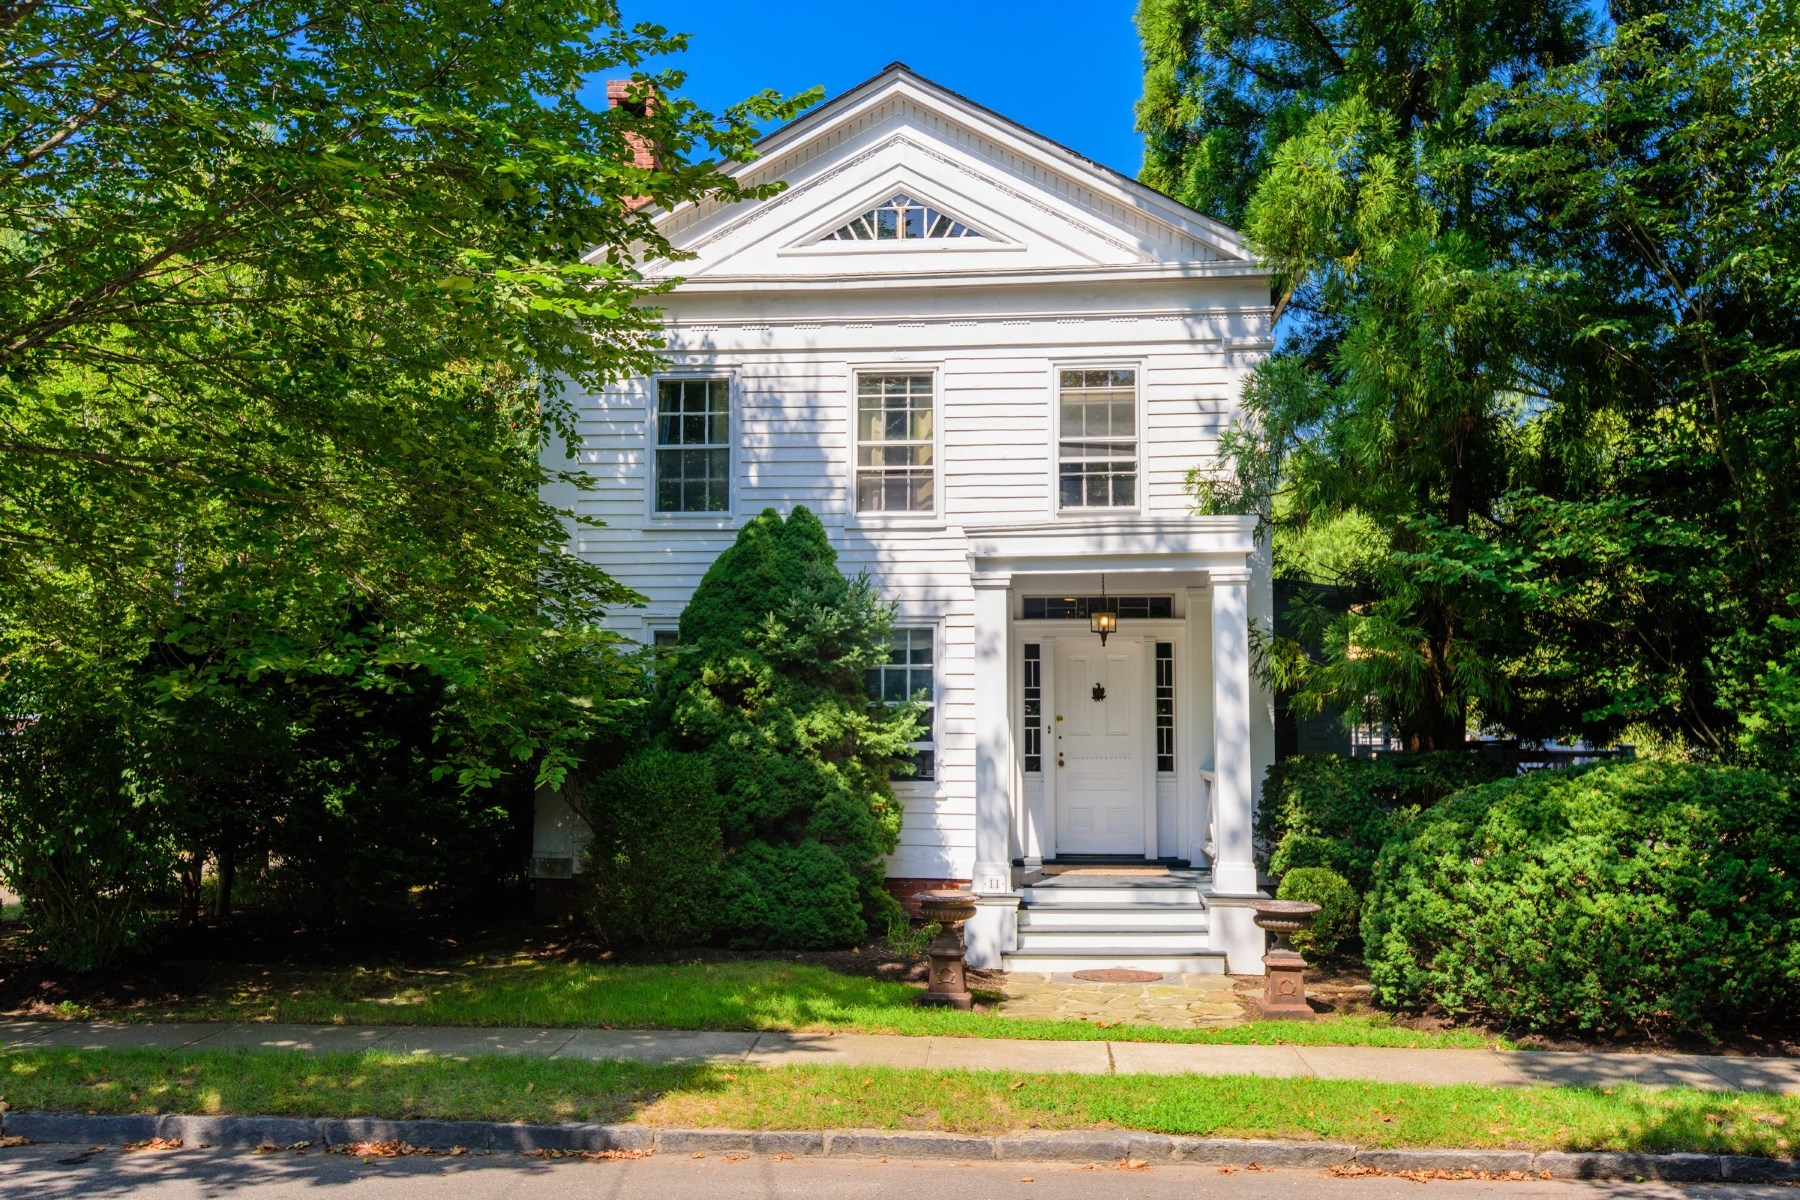 단독 가정 주택 용 매매 에 Greek Revival Classic, Sag Harbor Village 11 Henry St Sag Harbor Village, Sag Harbor, 뉴욕 11963 미국